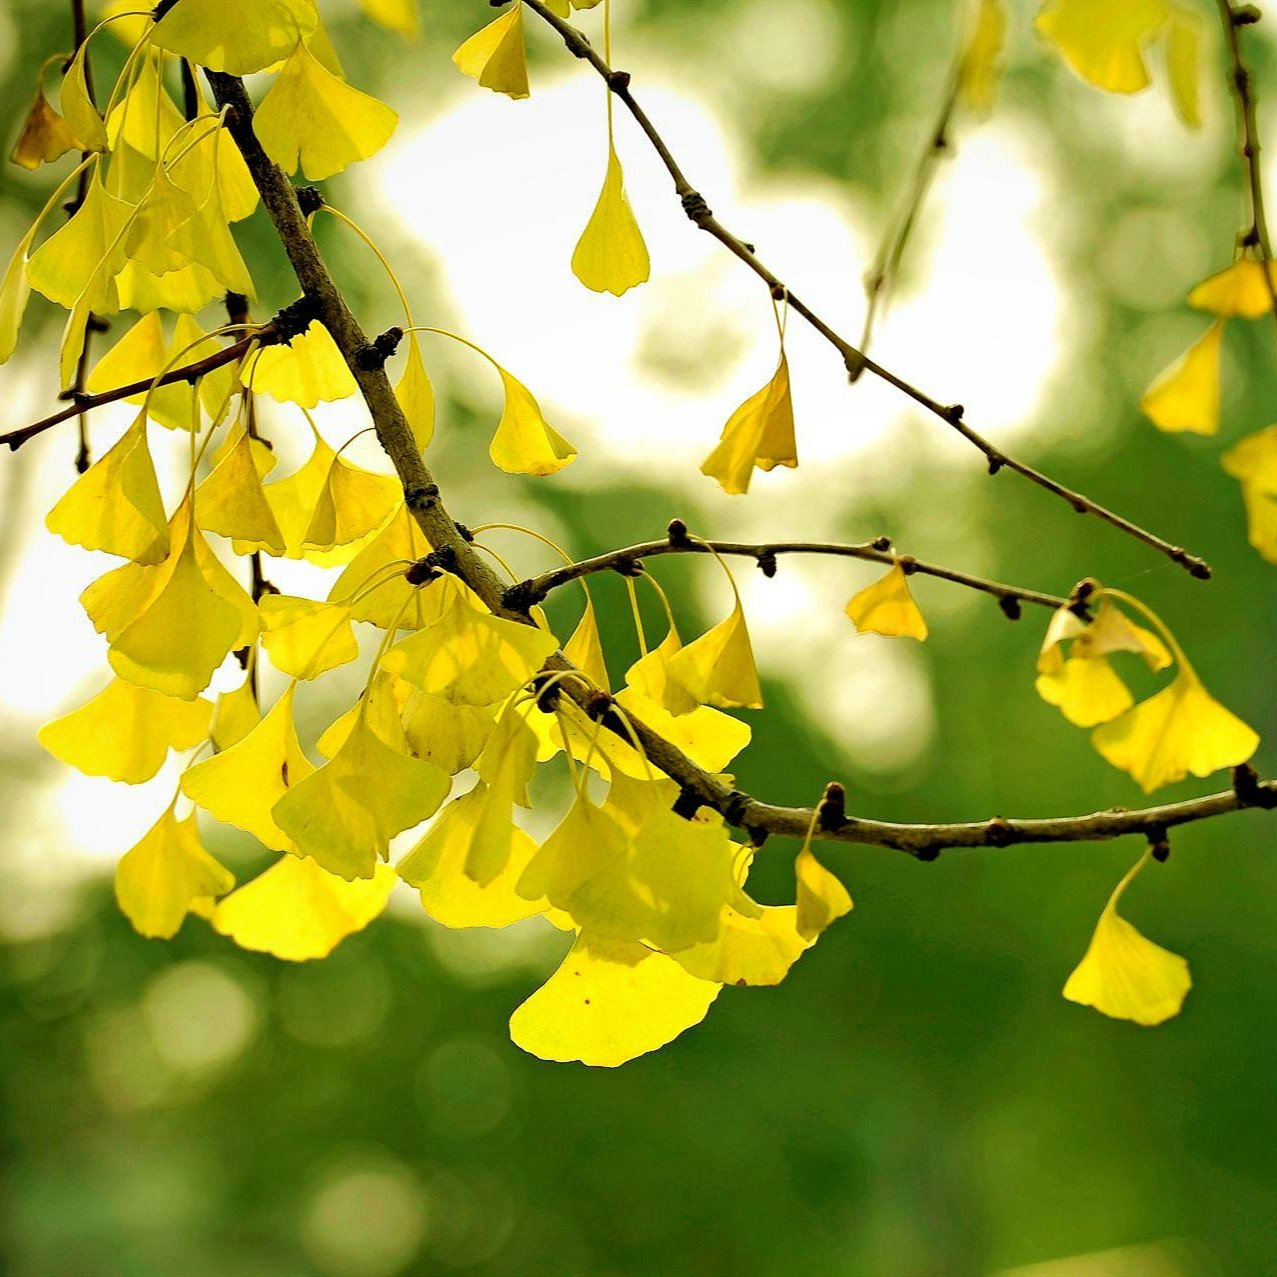 4 5 Ft Ginkgo Tree Unique Leaves Bright Yellow Fall Folia Sd96172 30 95 Buy Fruit Trees Vegetable Seeds Flower Seeds Flowering Trees And Fruit Trees And Rose Trees Online Seedsday